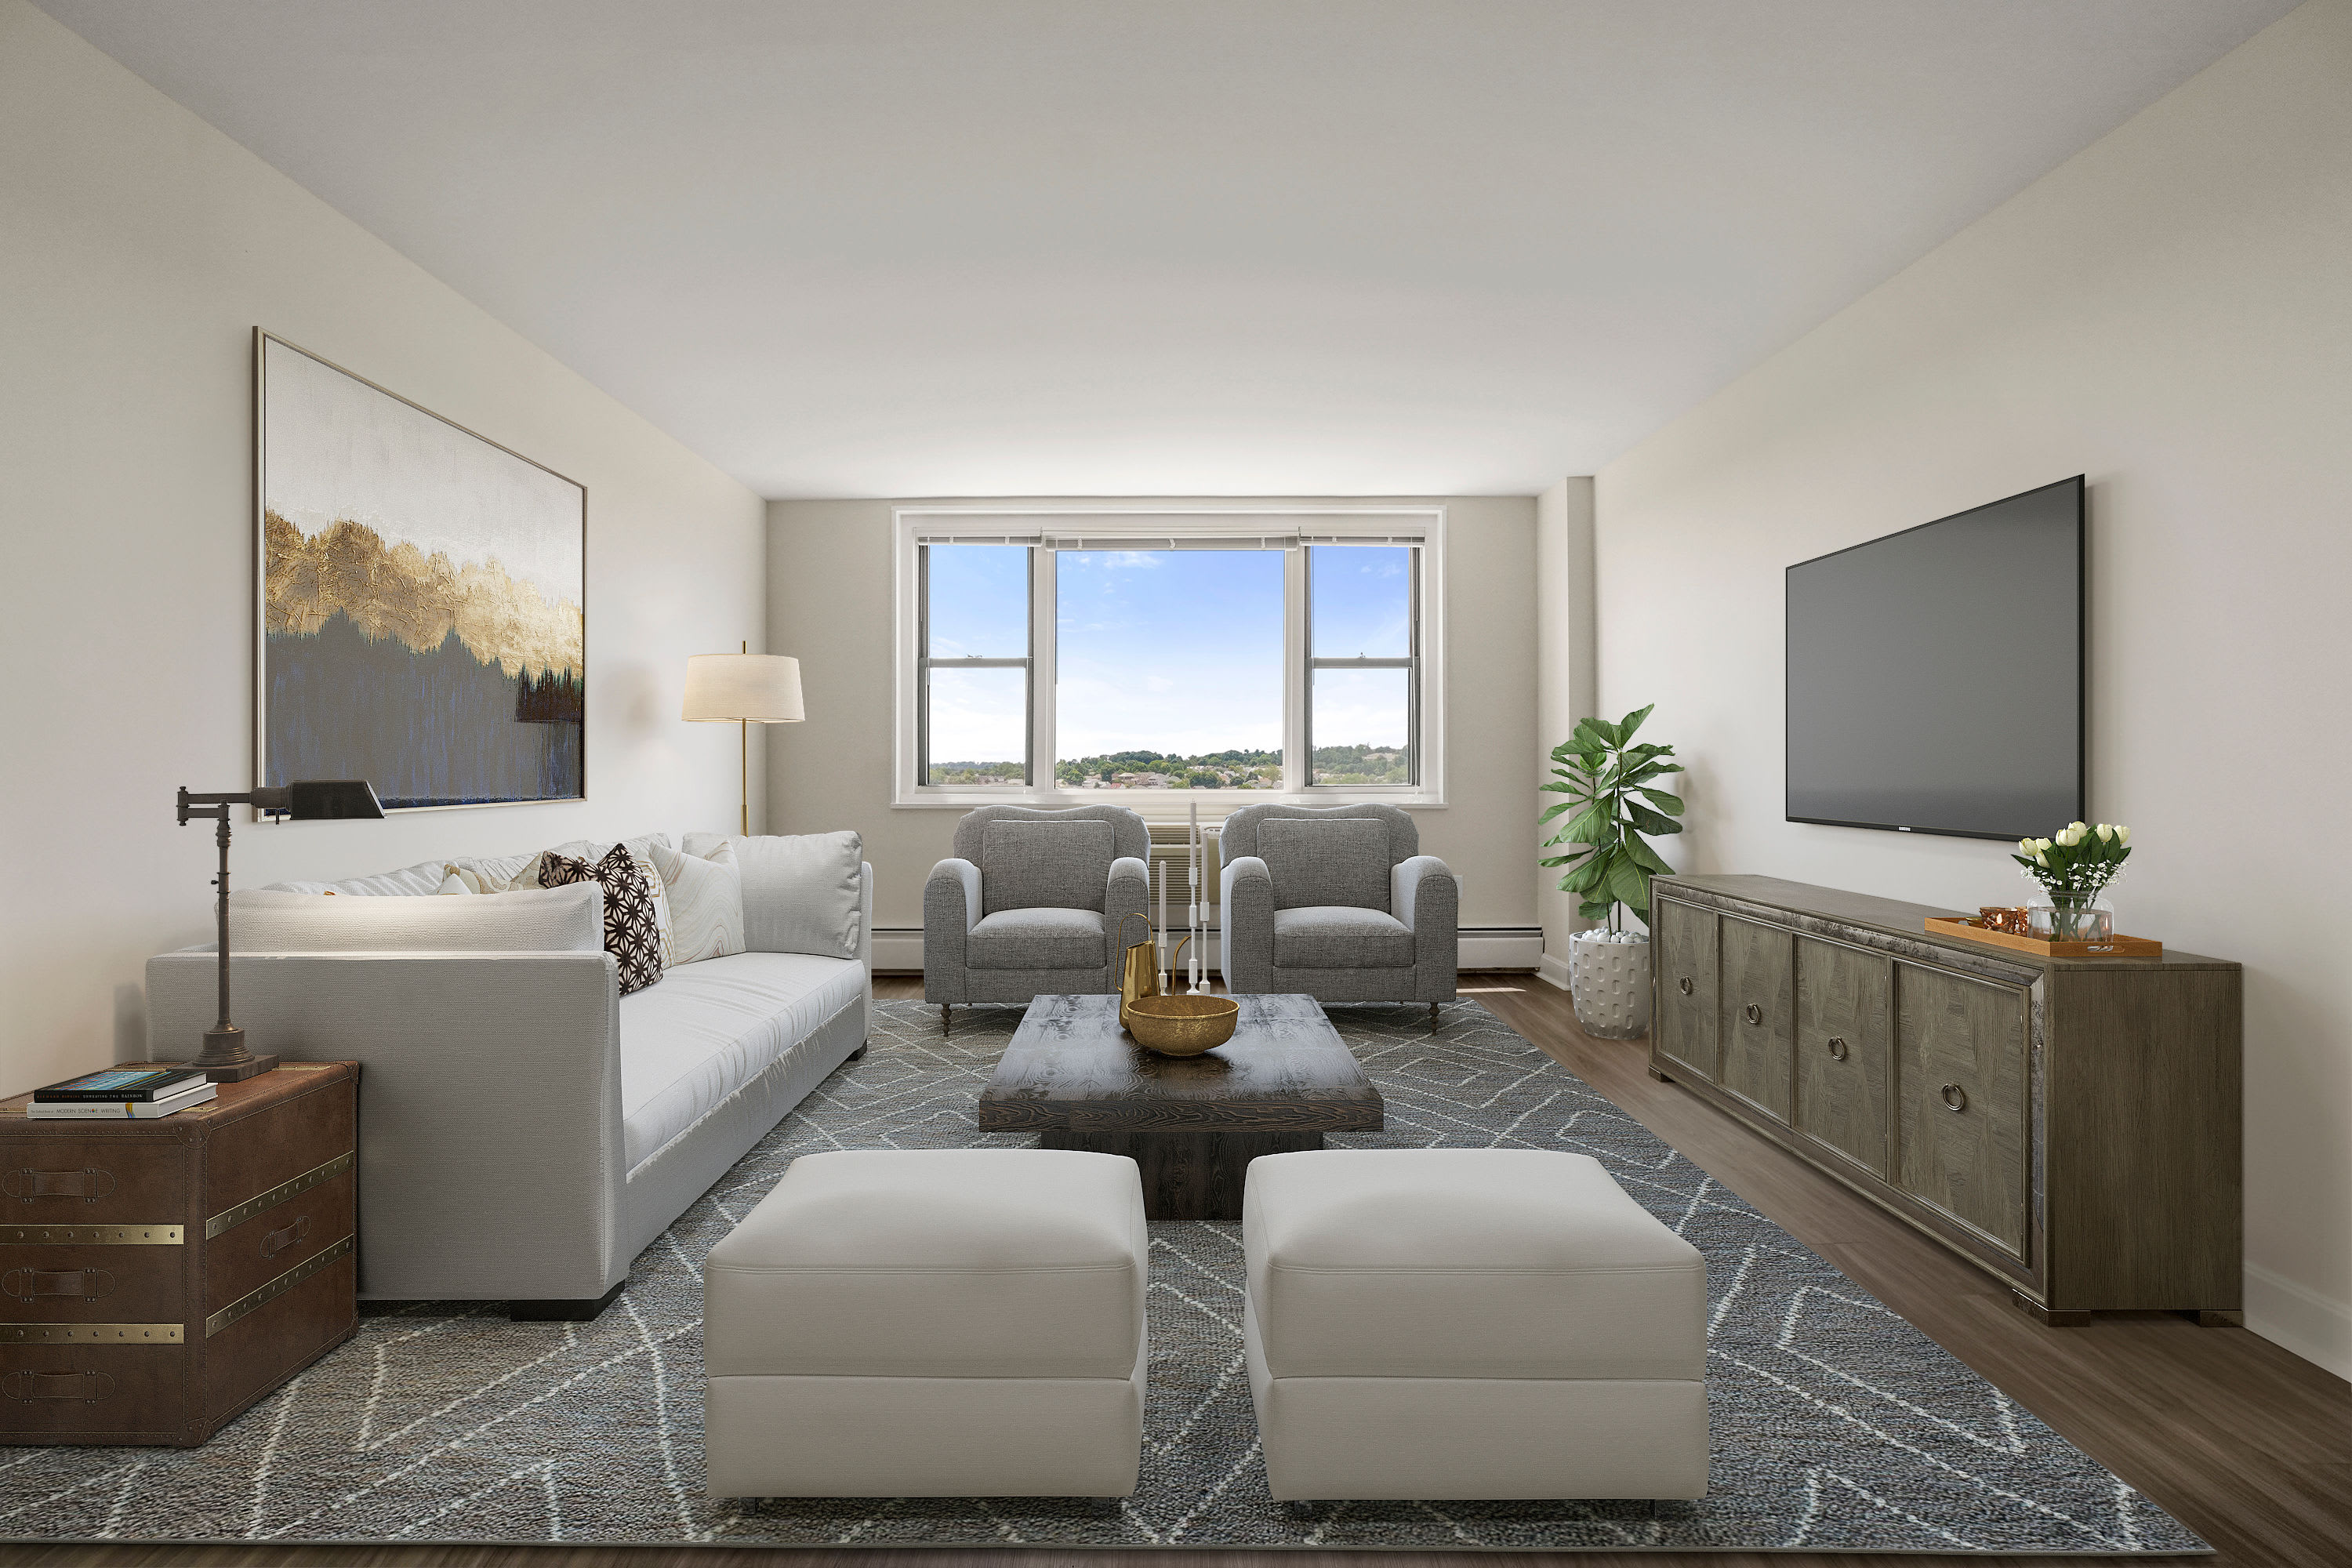 Spacious and light-filled living space at Parkside Place in Cambridge, MA